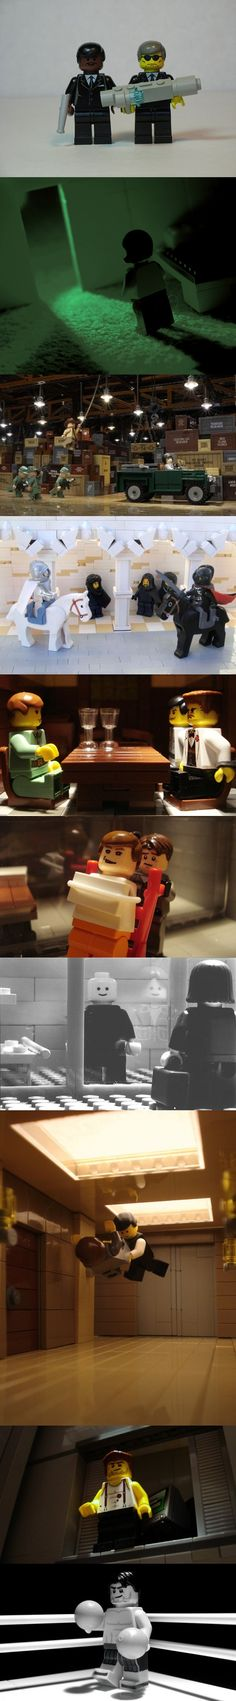 #lego #movie #scenes